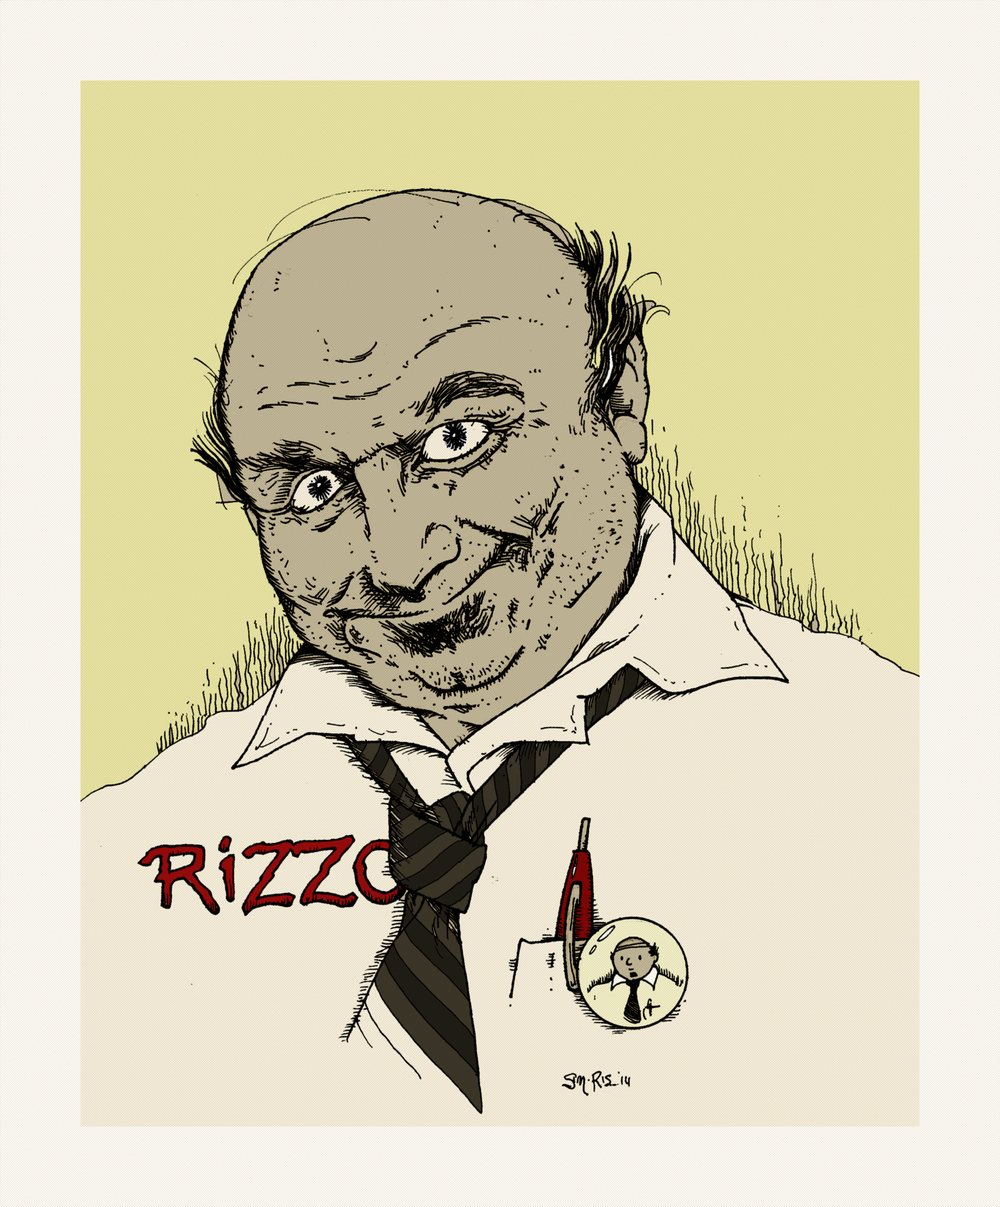 "Cragen ""Rizzo"" Rizzowski  is a teacher and writer, residing in Tromso, and the co-creator  (with W. Bill Czolgosz)  of the eponymous meta-comic strip."